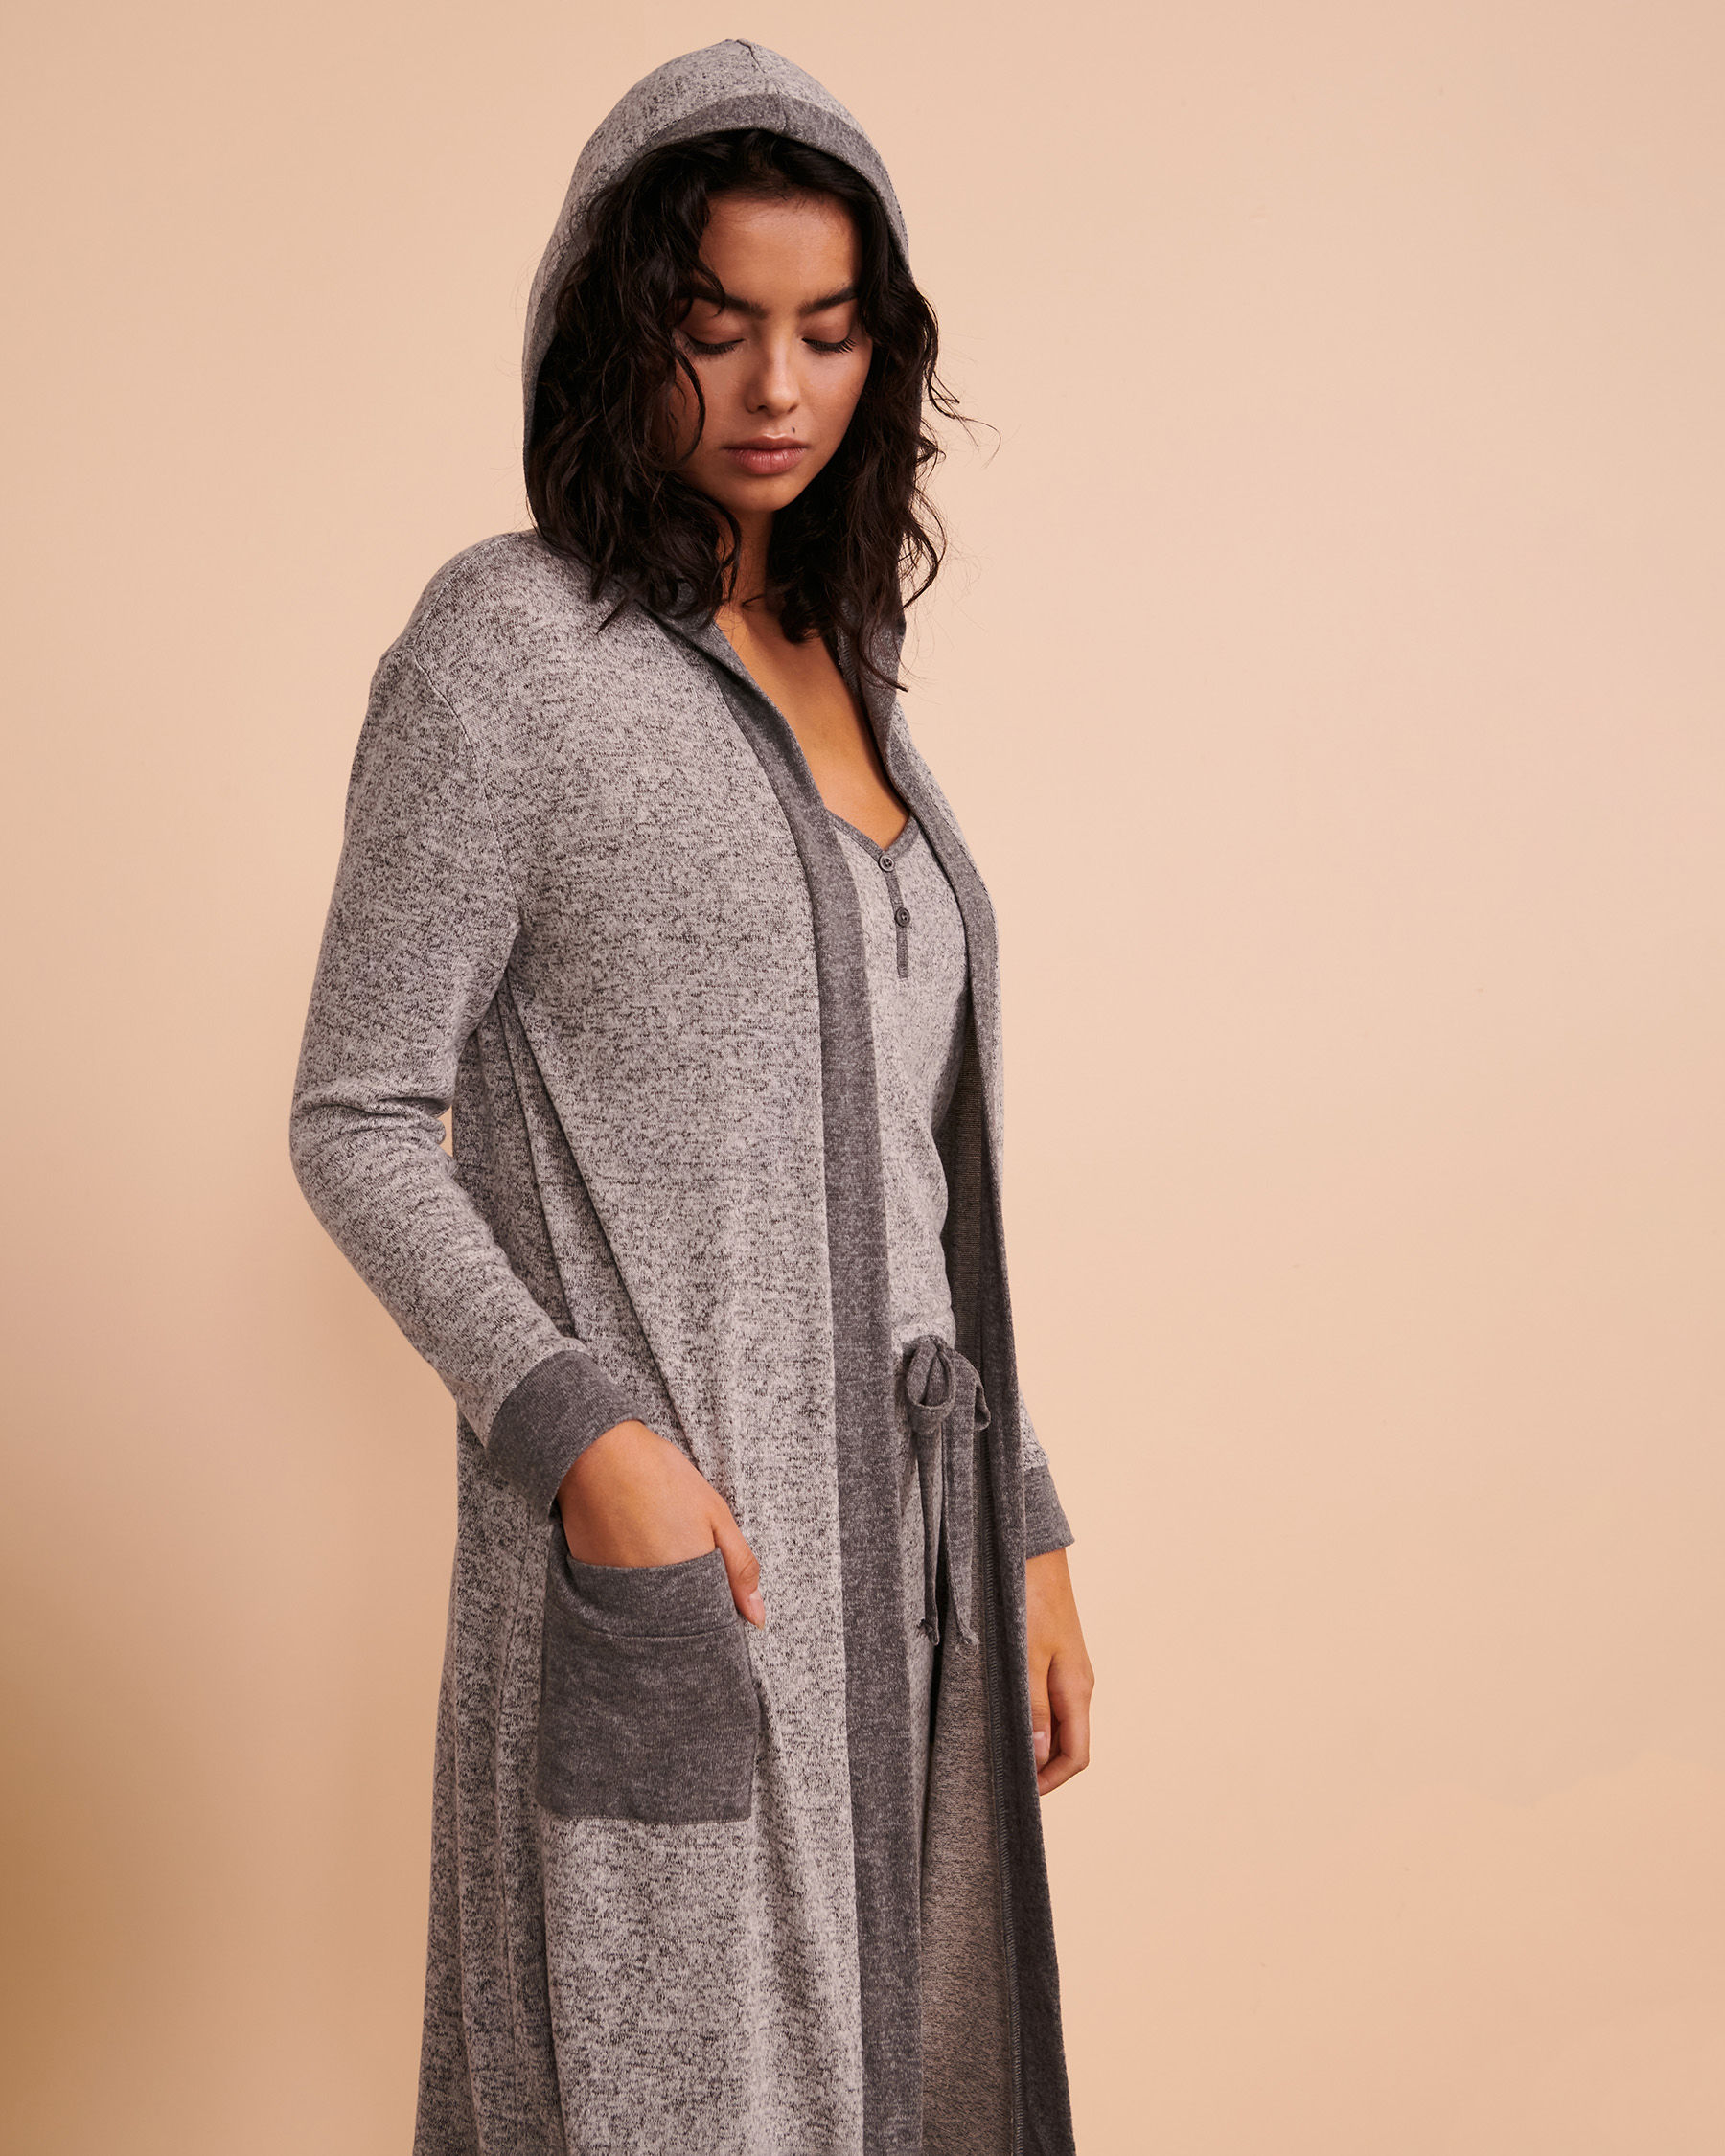 TURQUOISE COUTURE Long Sleeve Cardigan Soft grey 02400004 - View1